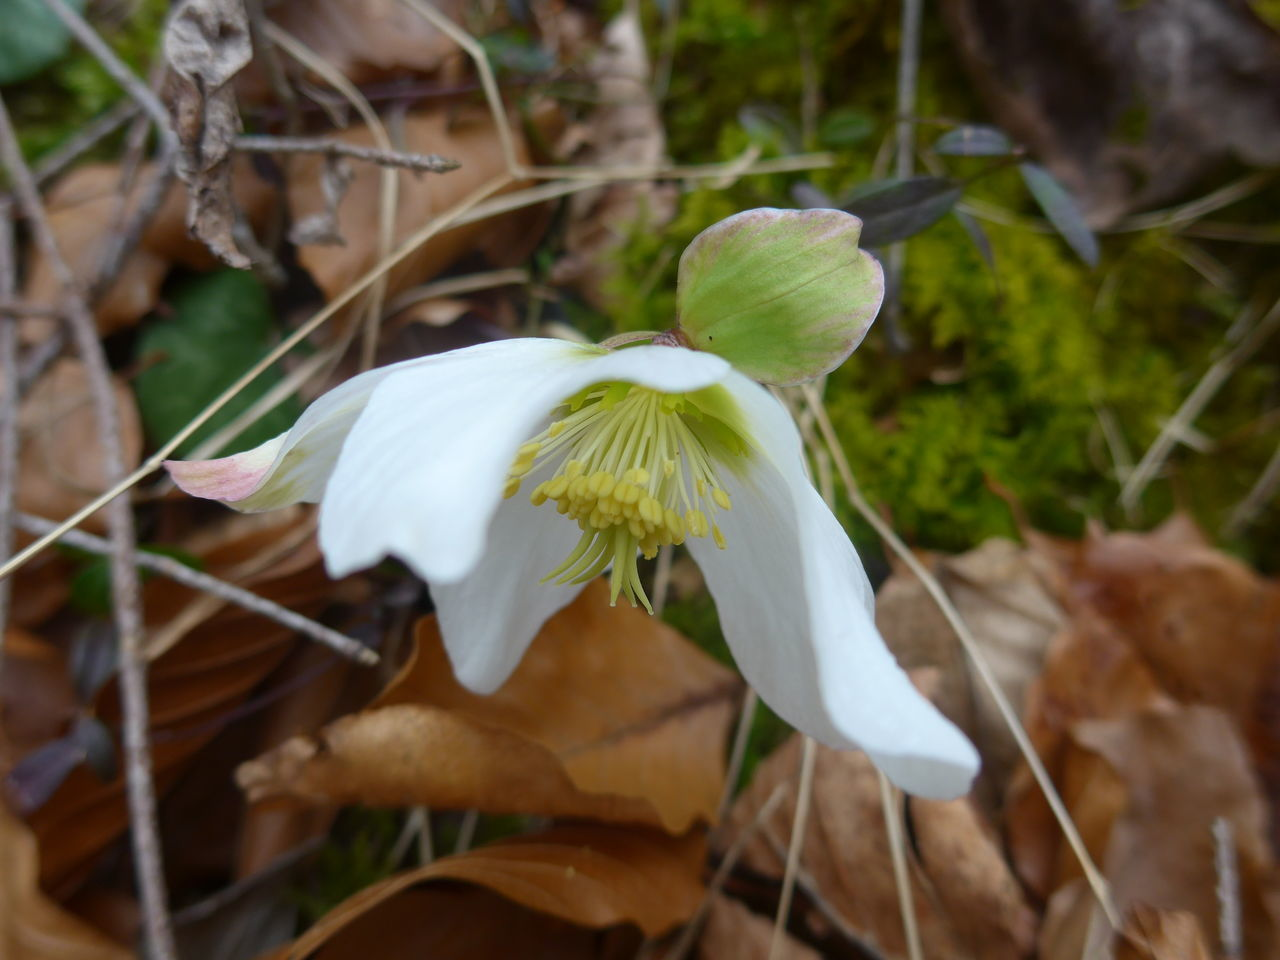 Hiking trough still winterly woods - and suddenly a field full of christmas roses Christmas Rose Christrose Flower Collection Helleborus Niger Schneerose Spring Spring Flowers Yeah Springtime!